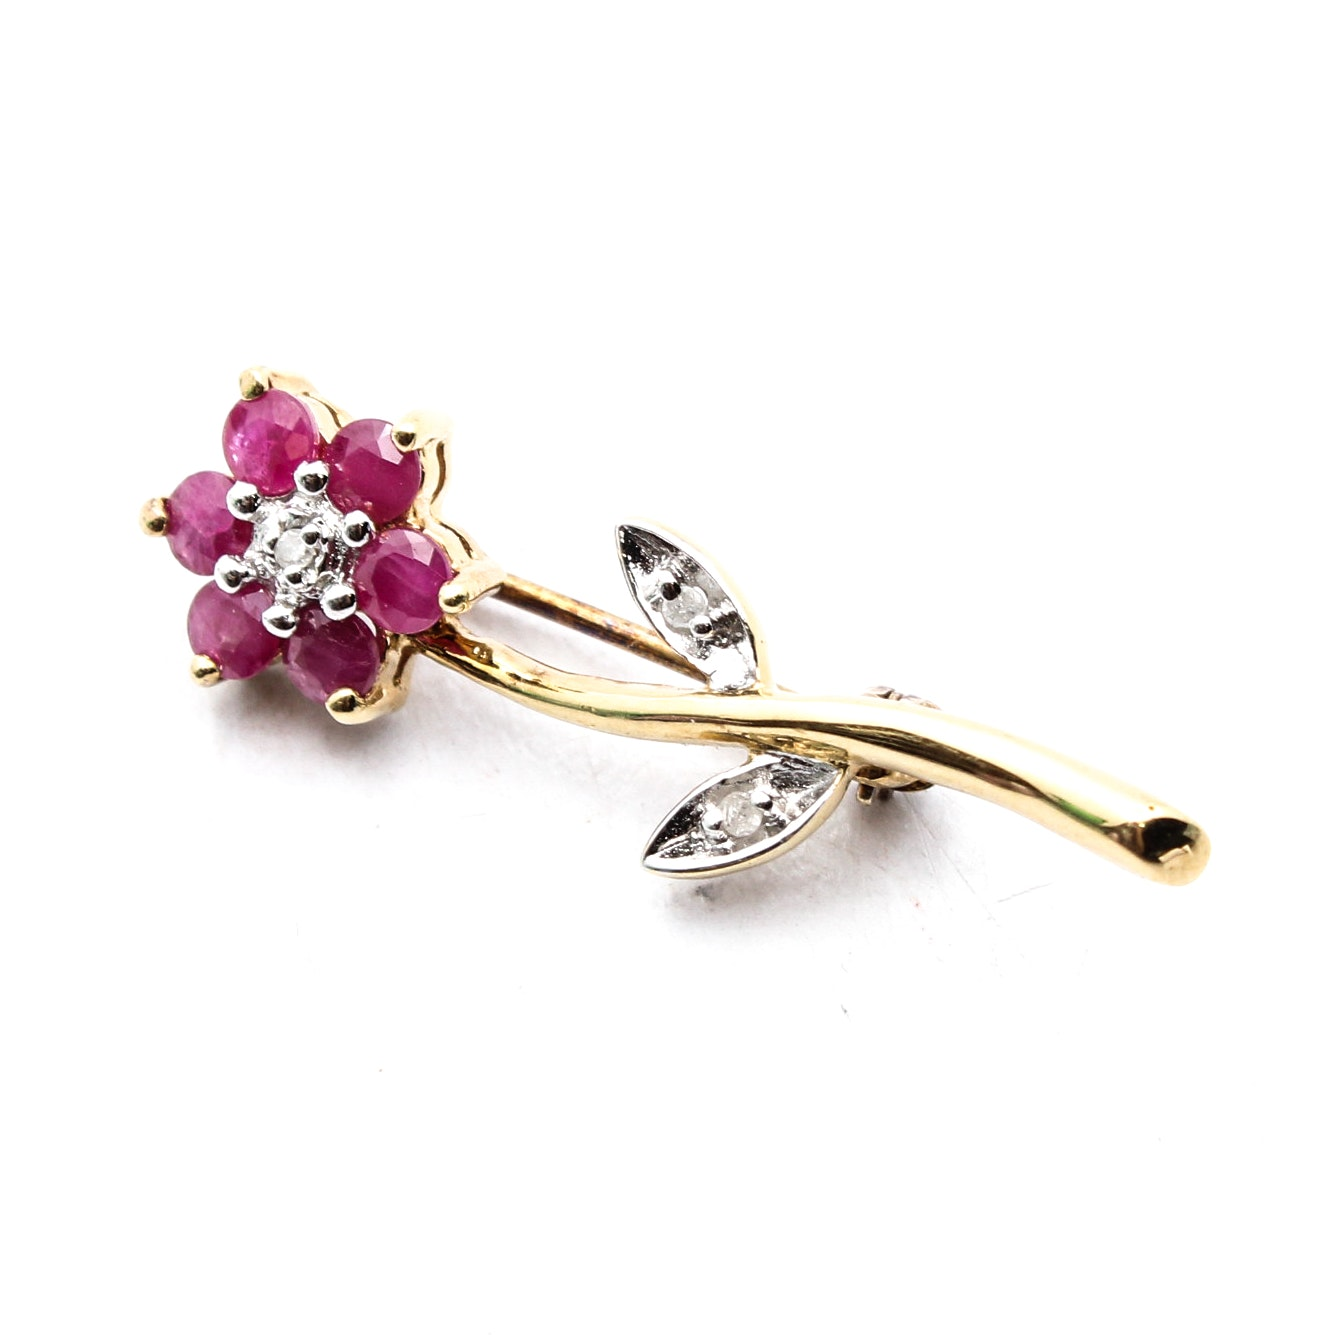 Sterling Silver Floral Brooch with Diamond and Rubies